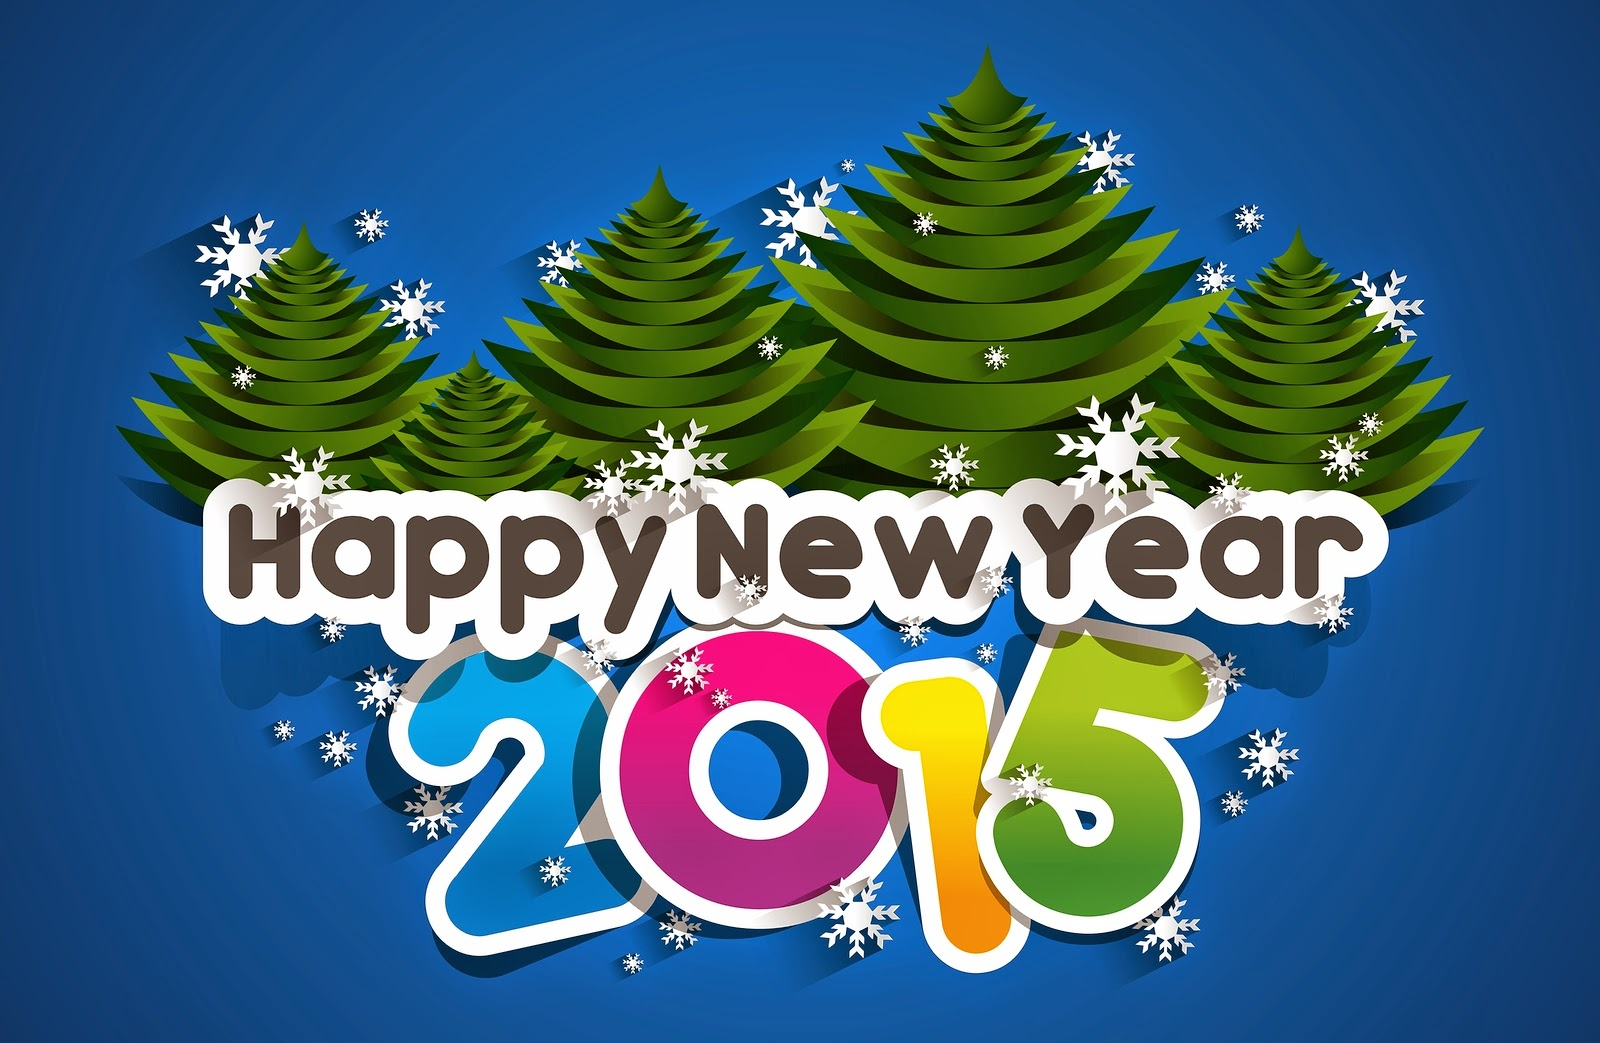 2015 Happy New Year Wallpaper 1600x1043